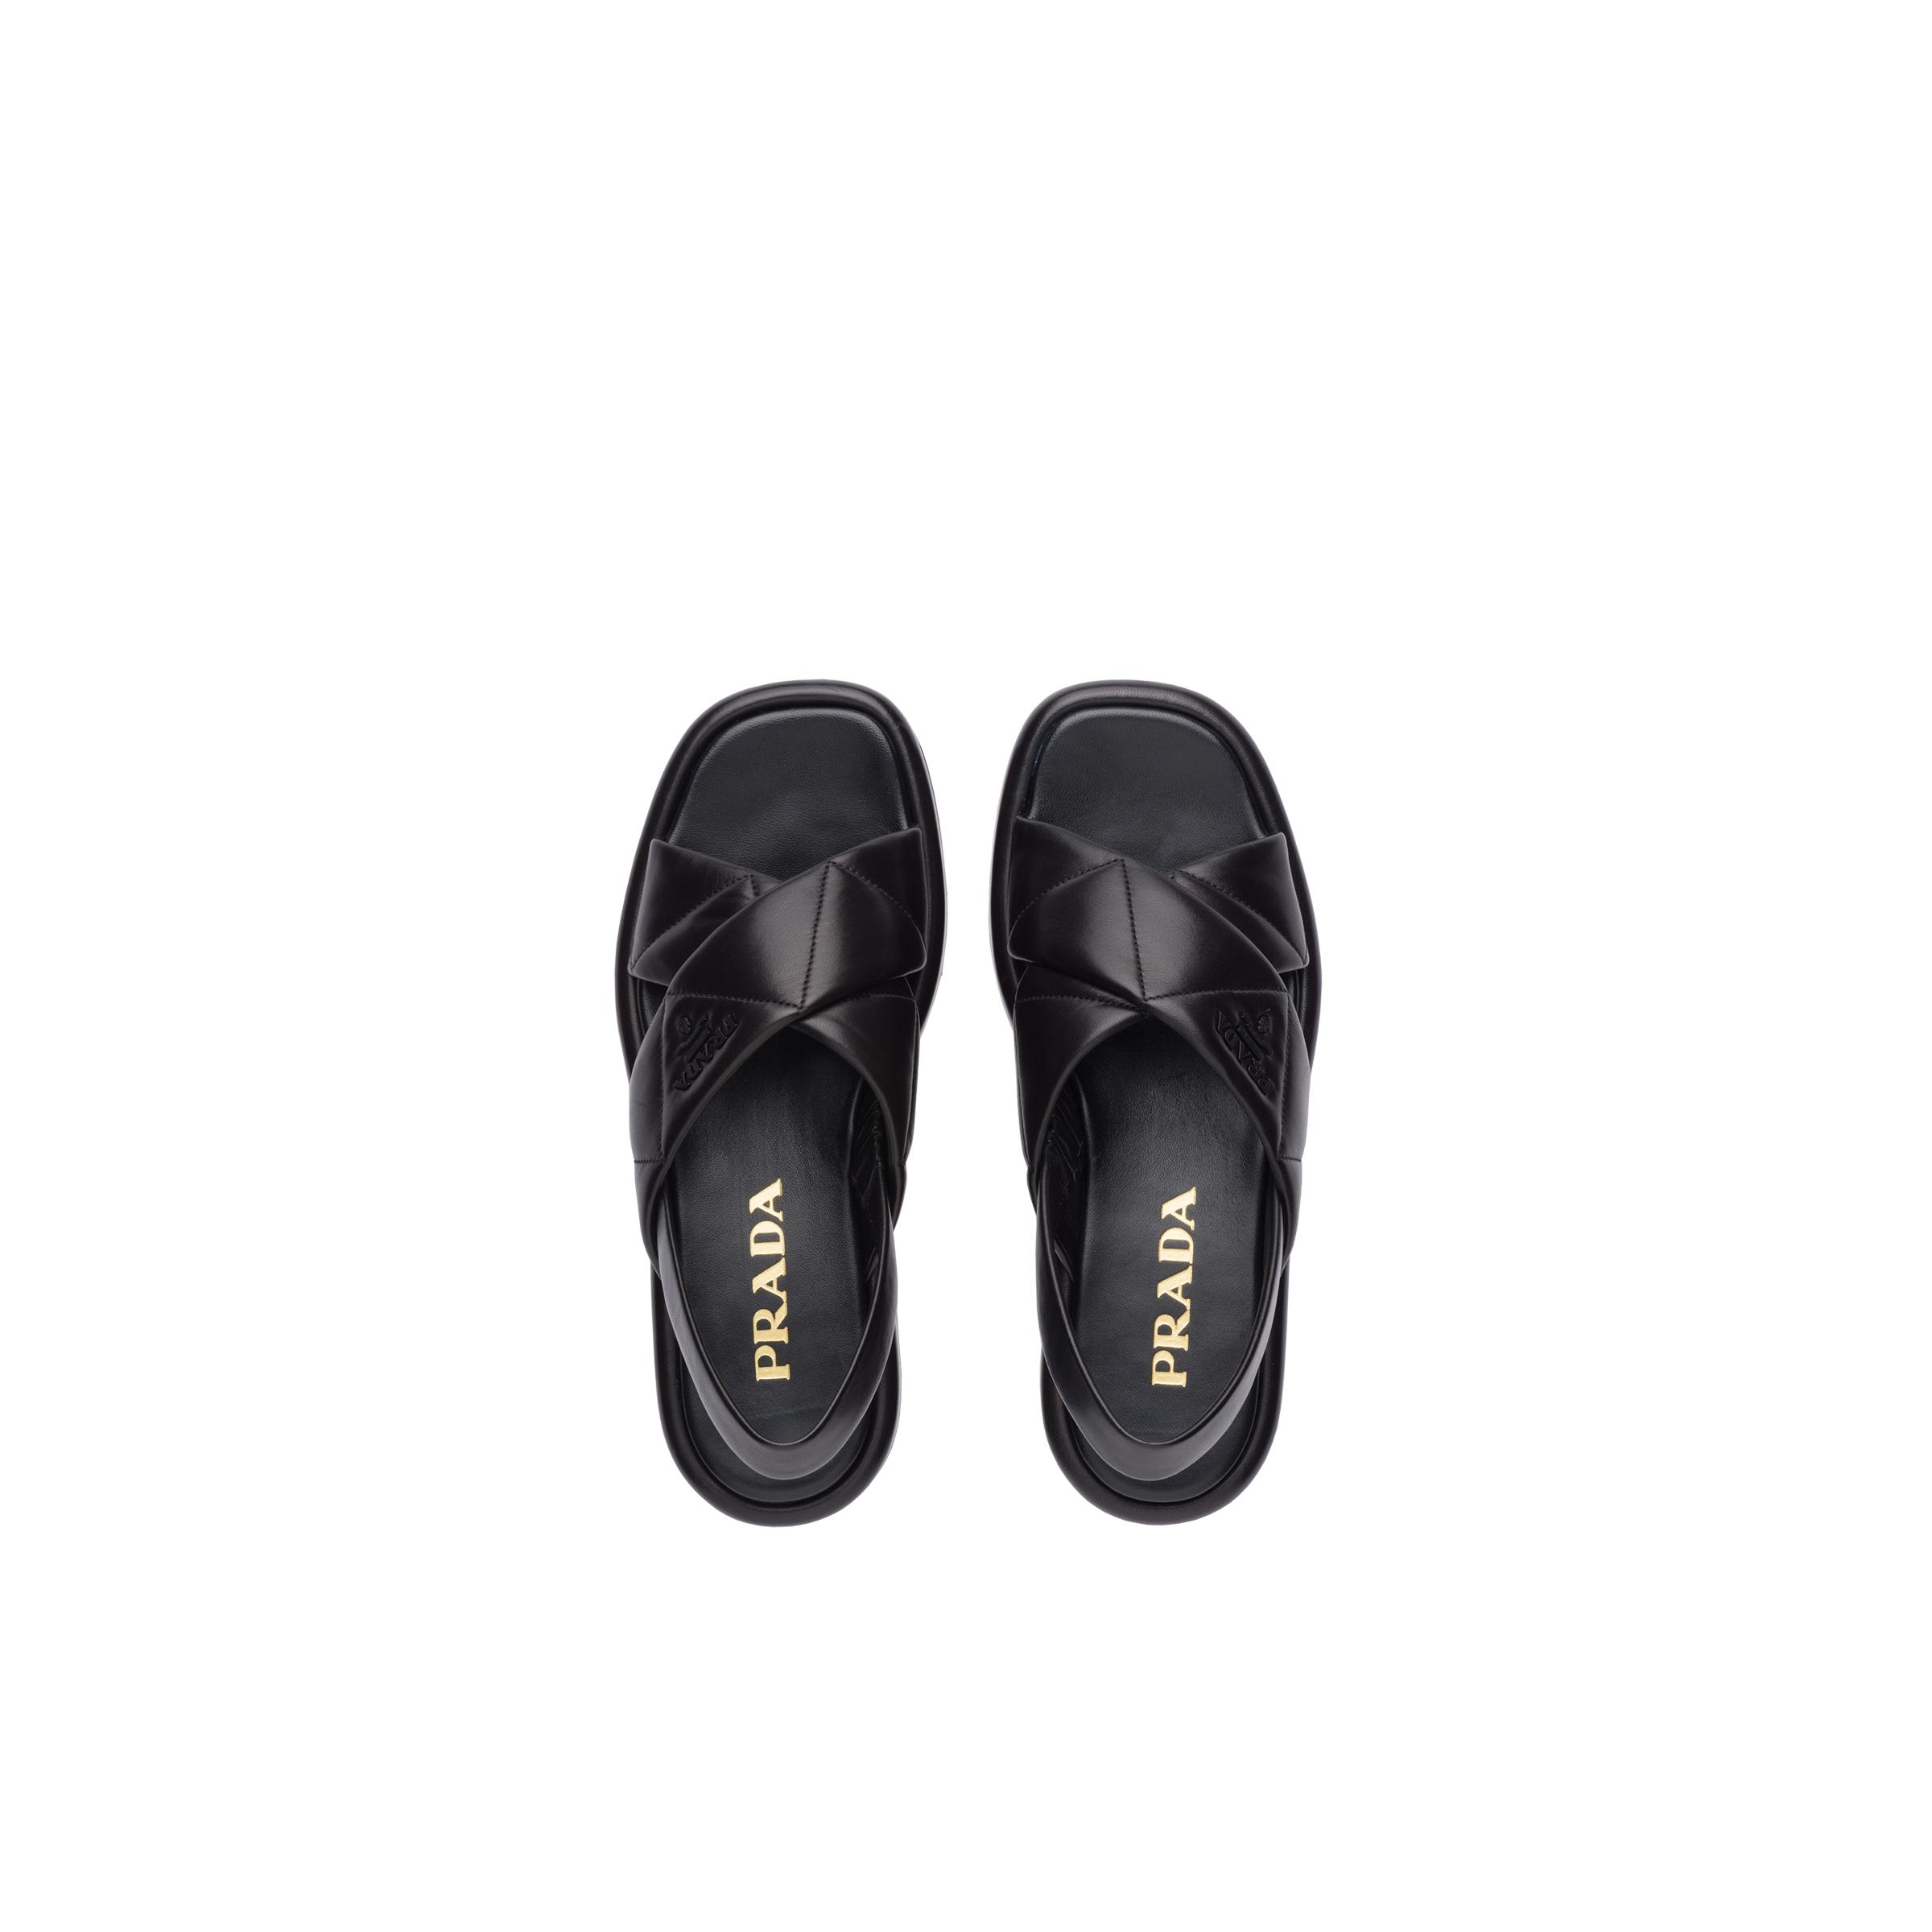 Quilted Nappa Leather Flatform Sandals Women Black 1